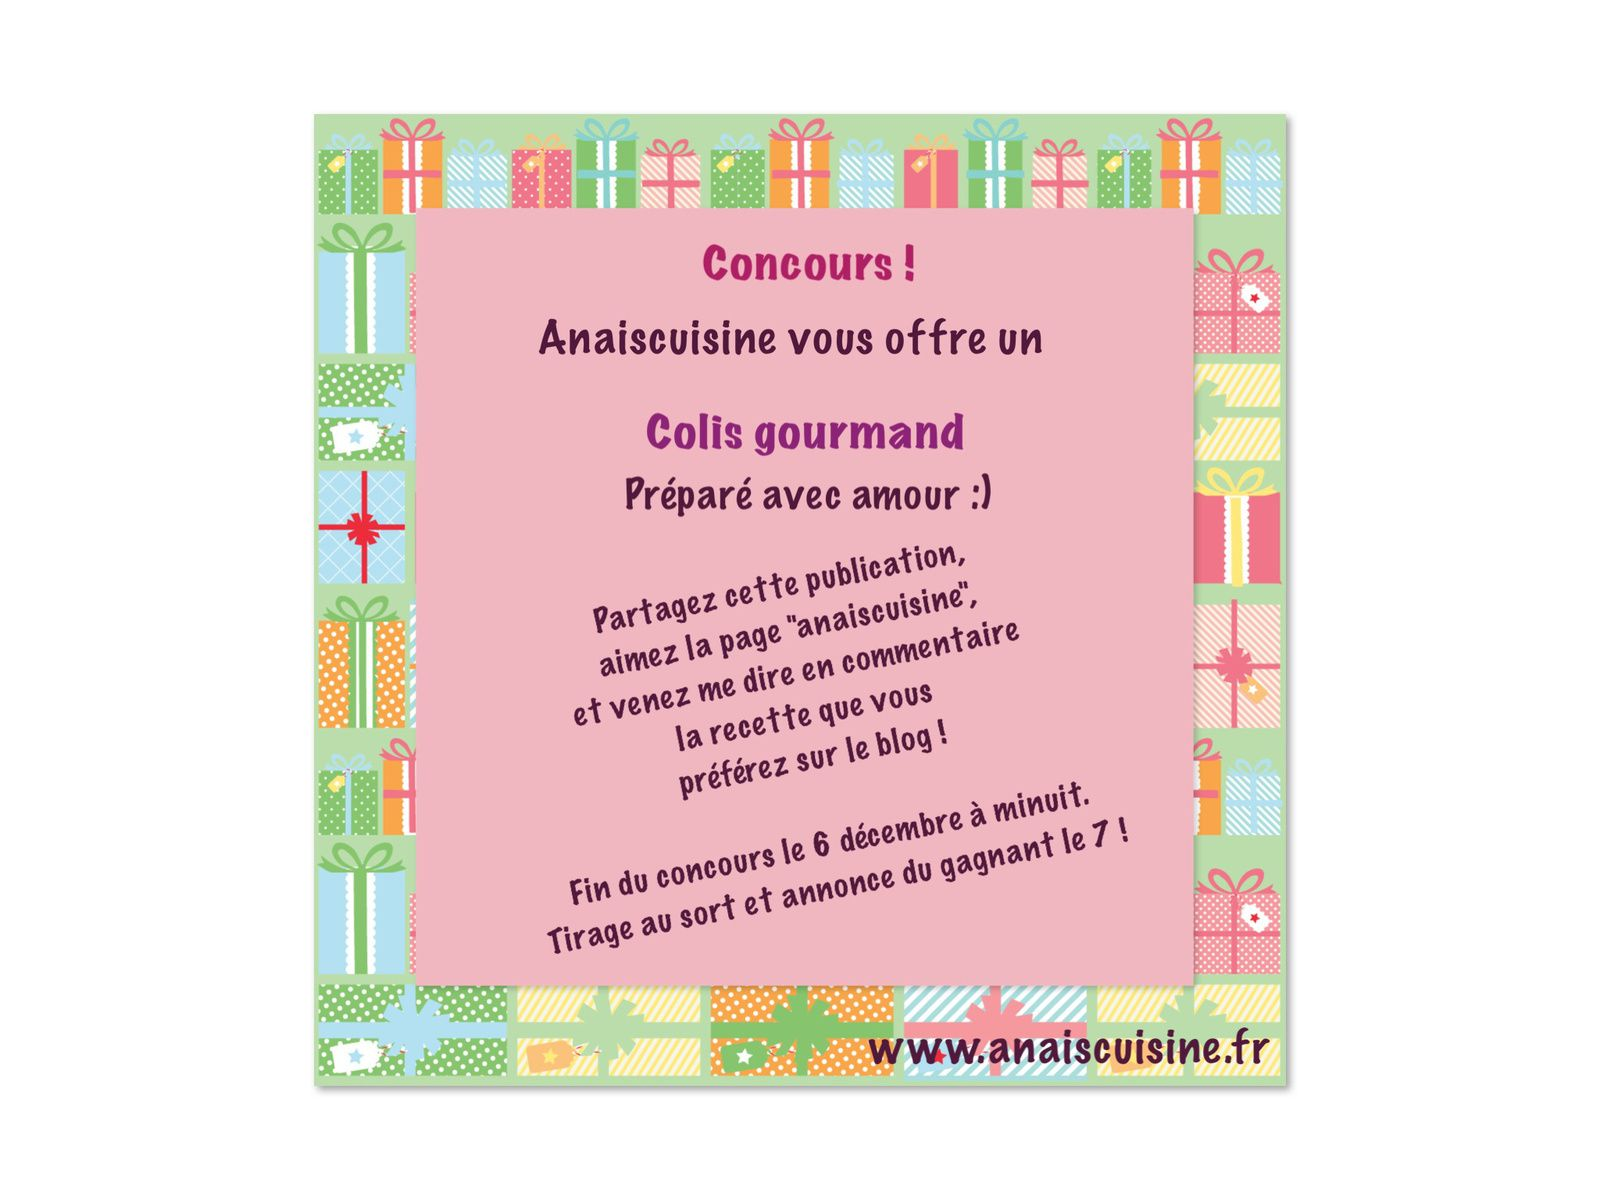 Concours anaiscuisine